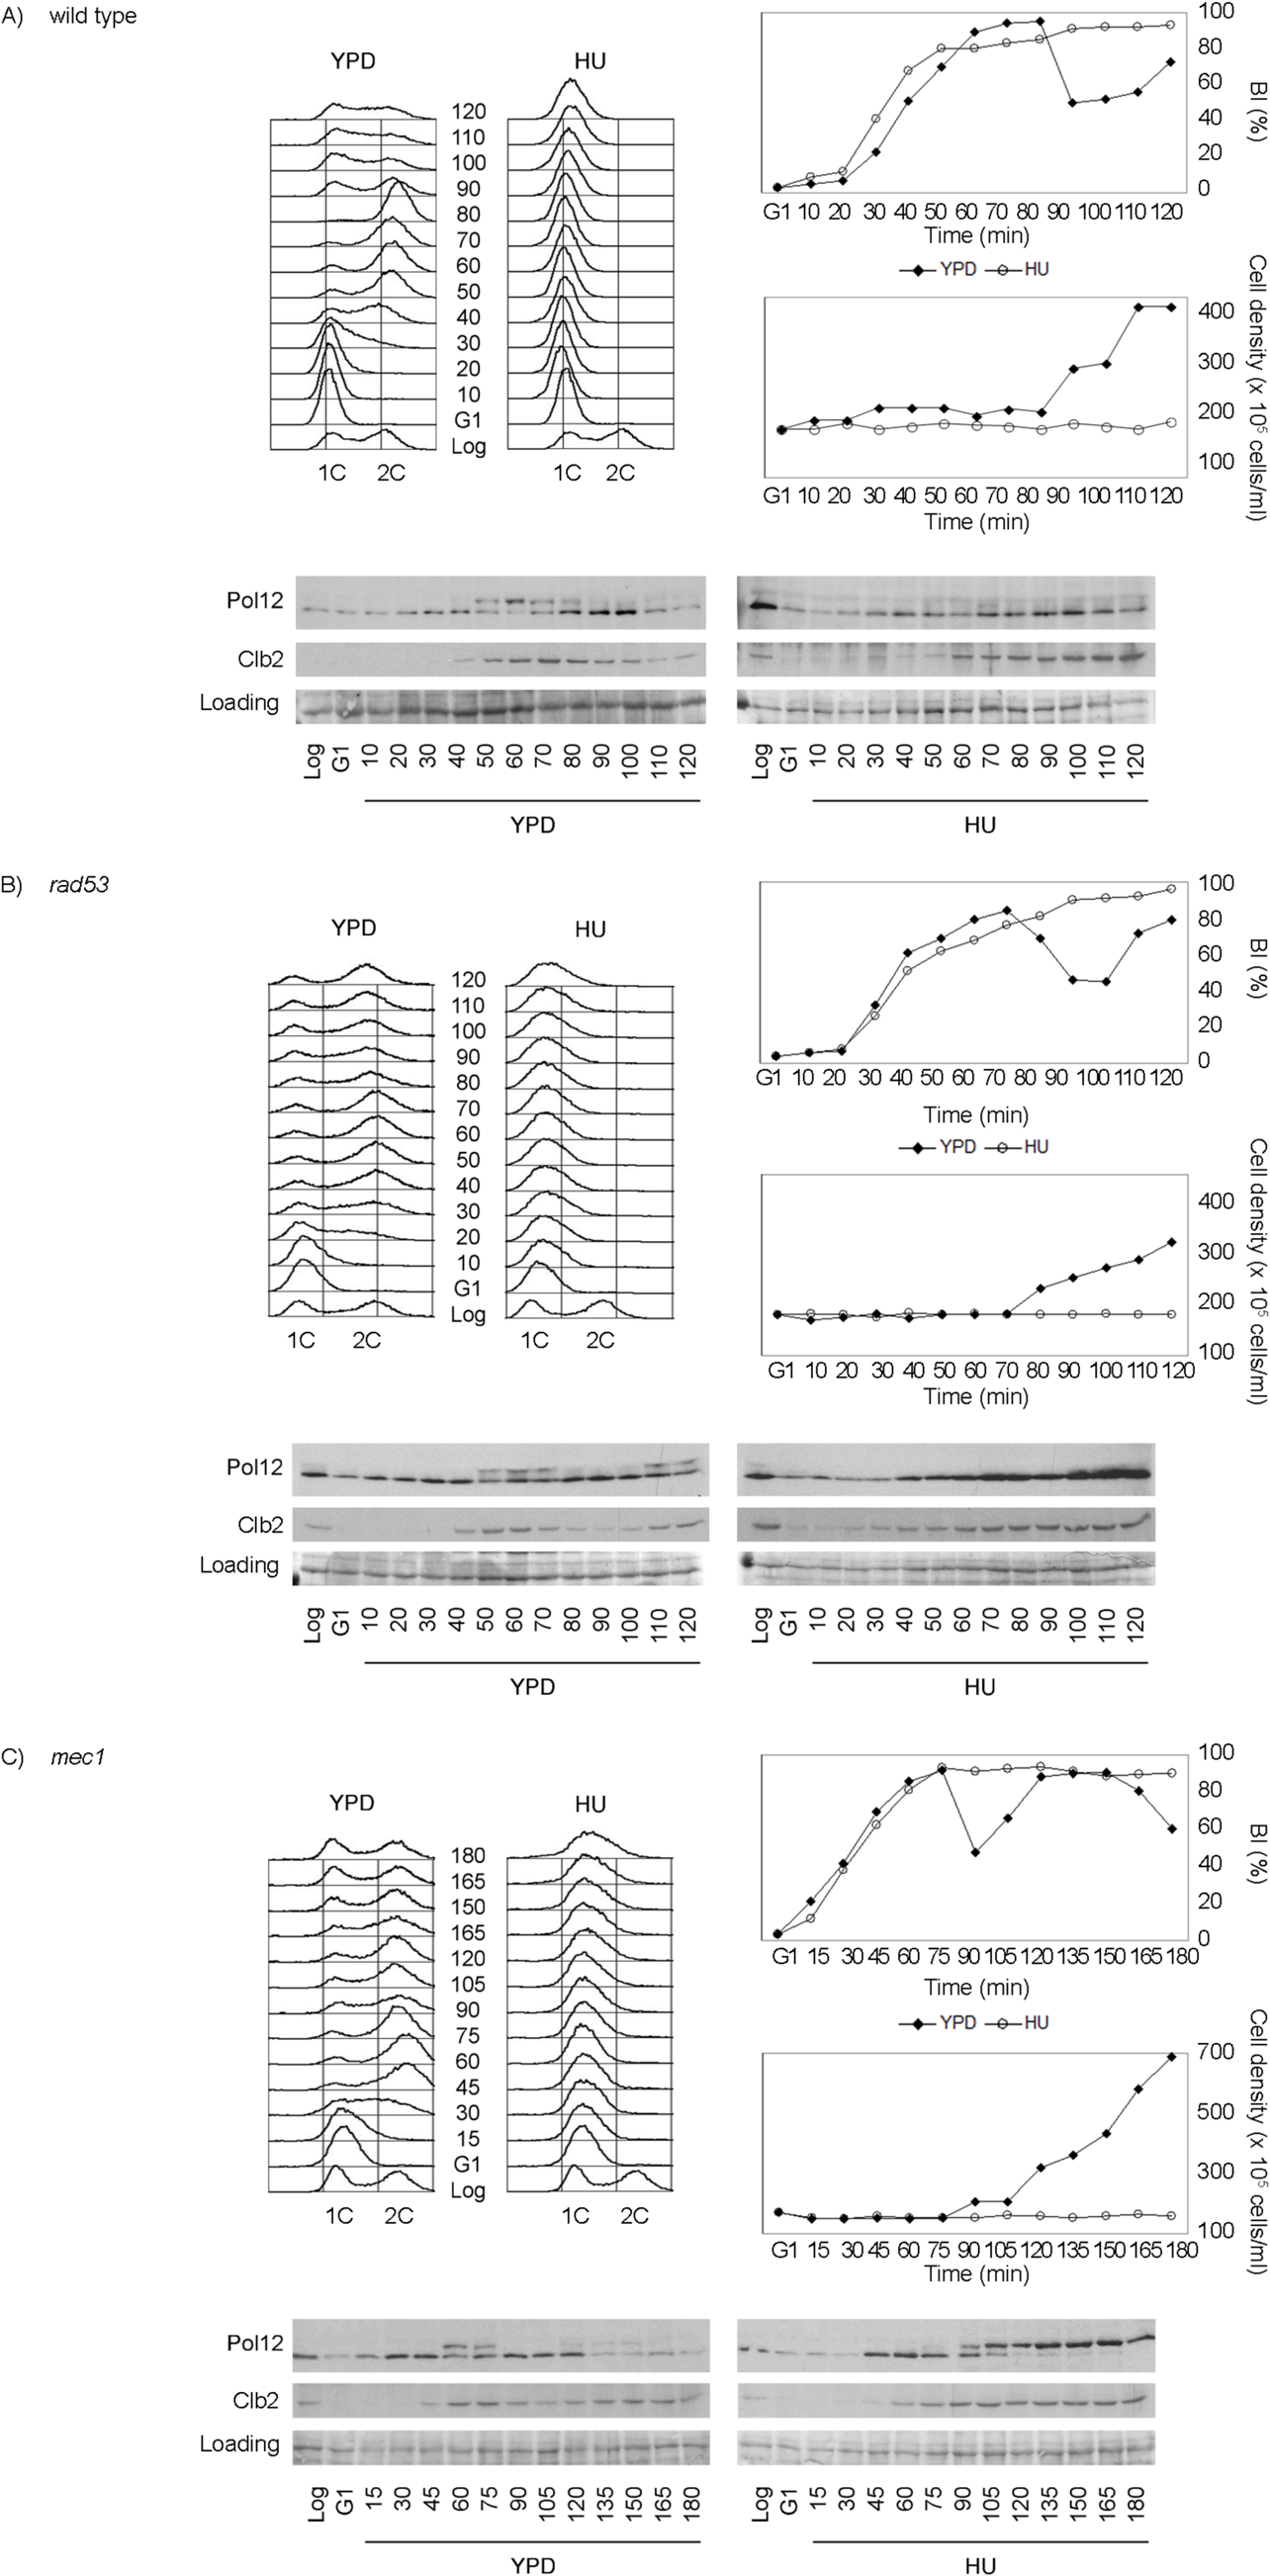 M-CDK activity is inhibited in response to replication stress in a Mec1 dependent manner.